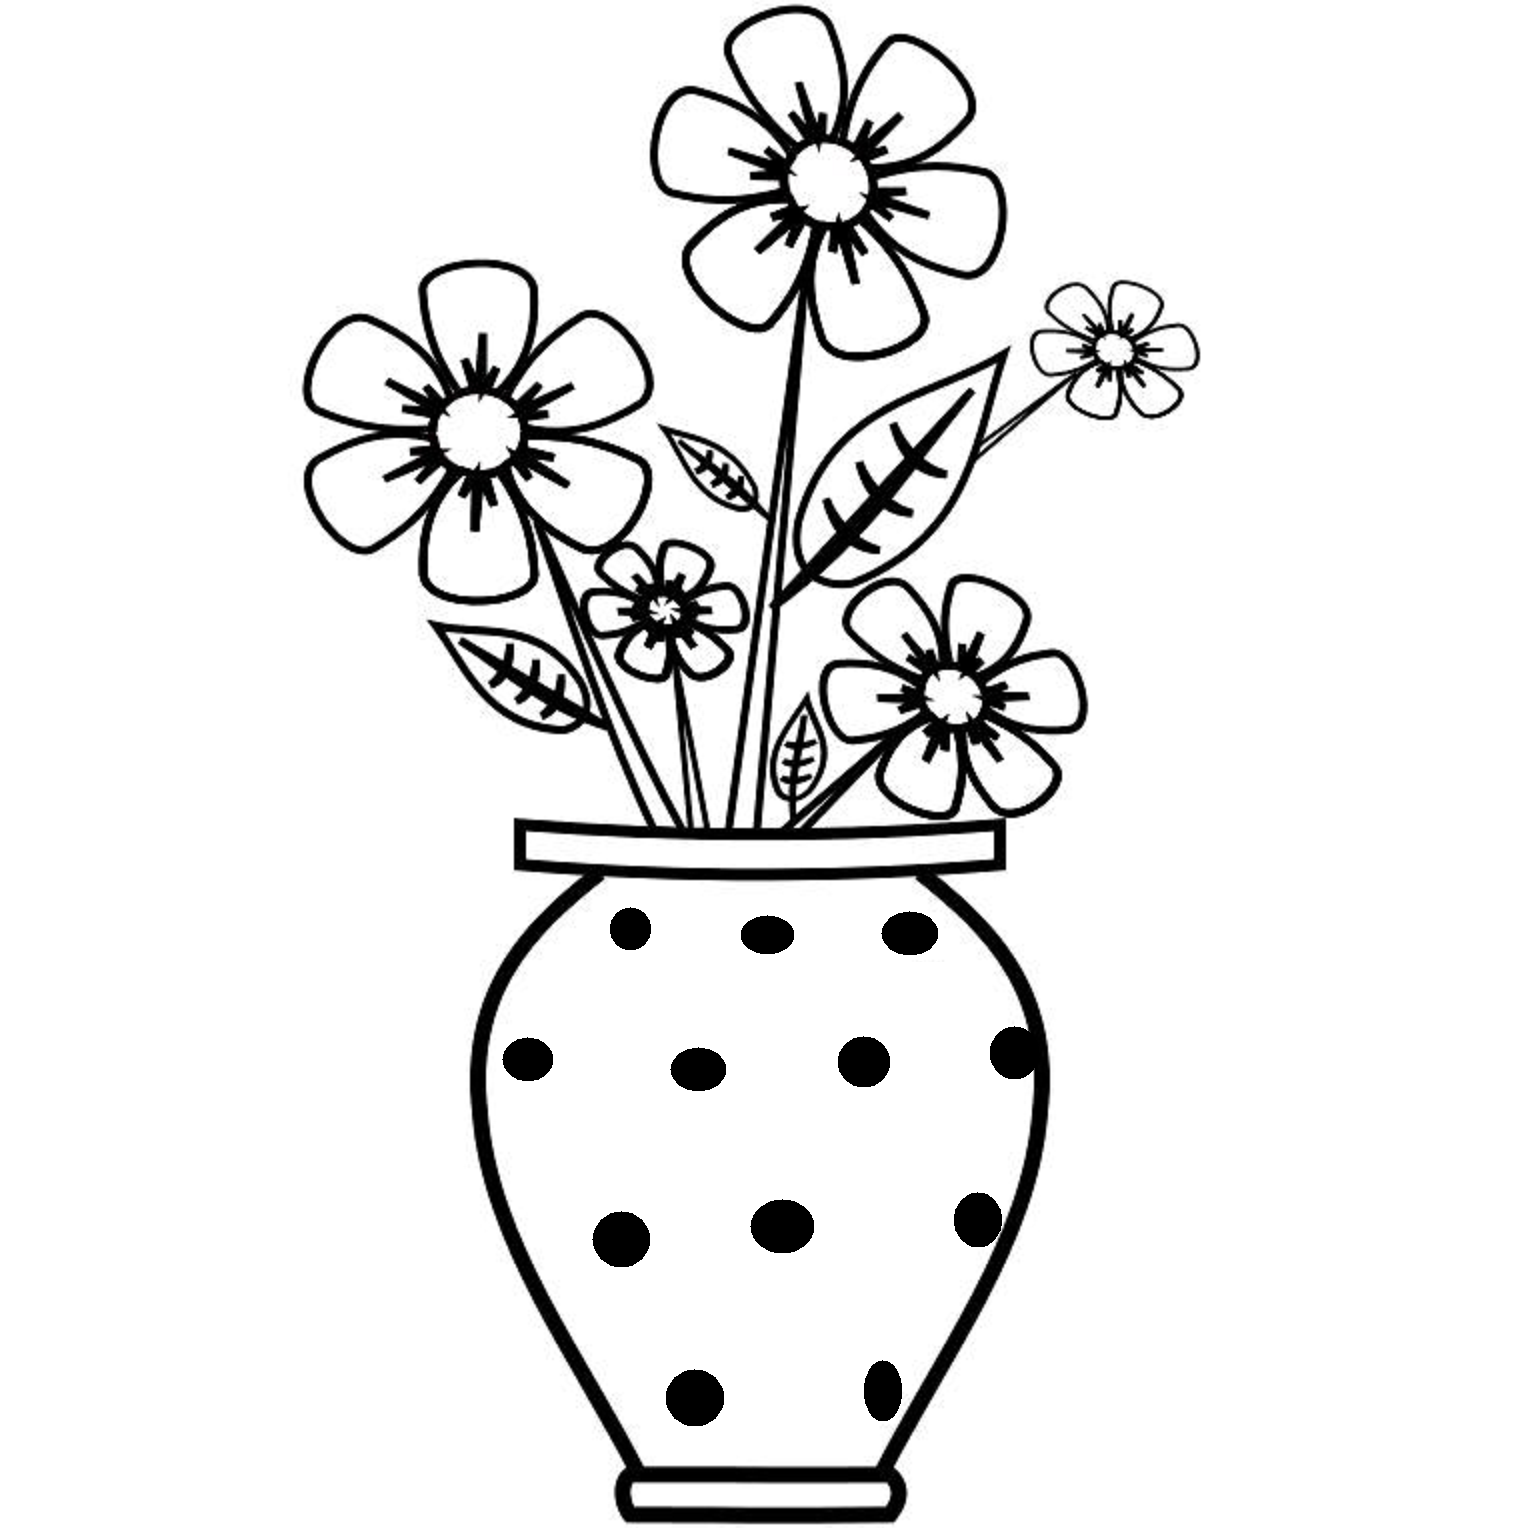 1532x1528 Pictures Flowers For Vase Drawing,